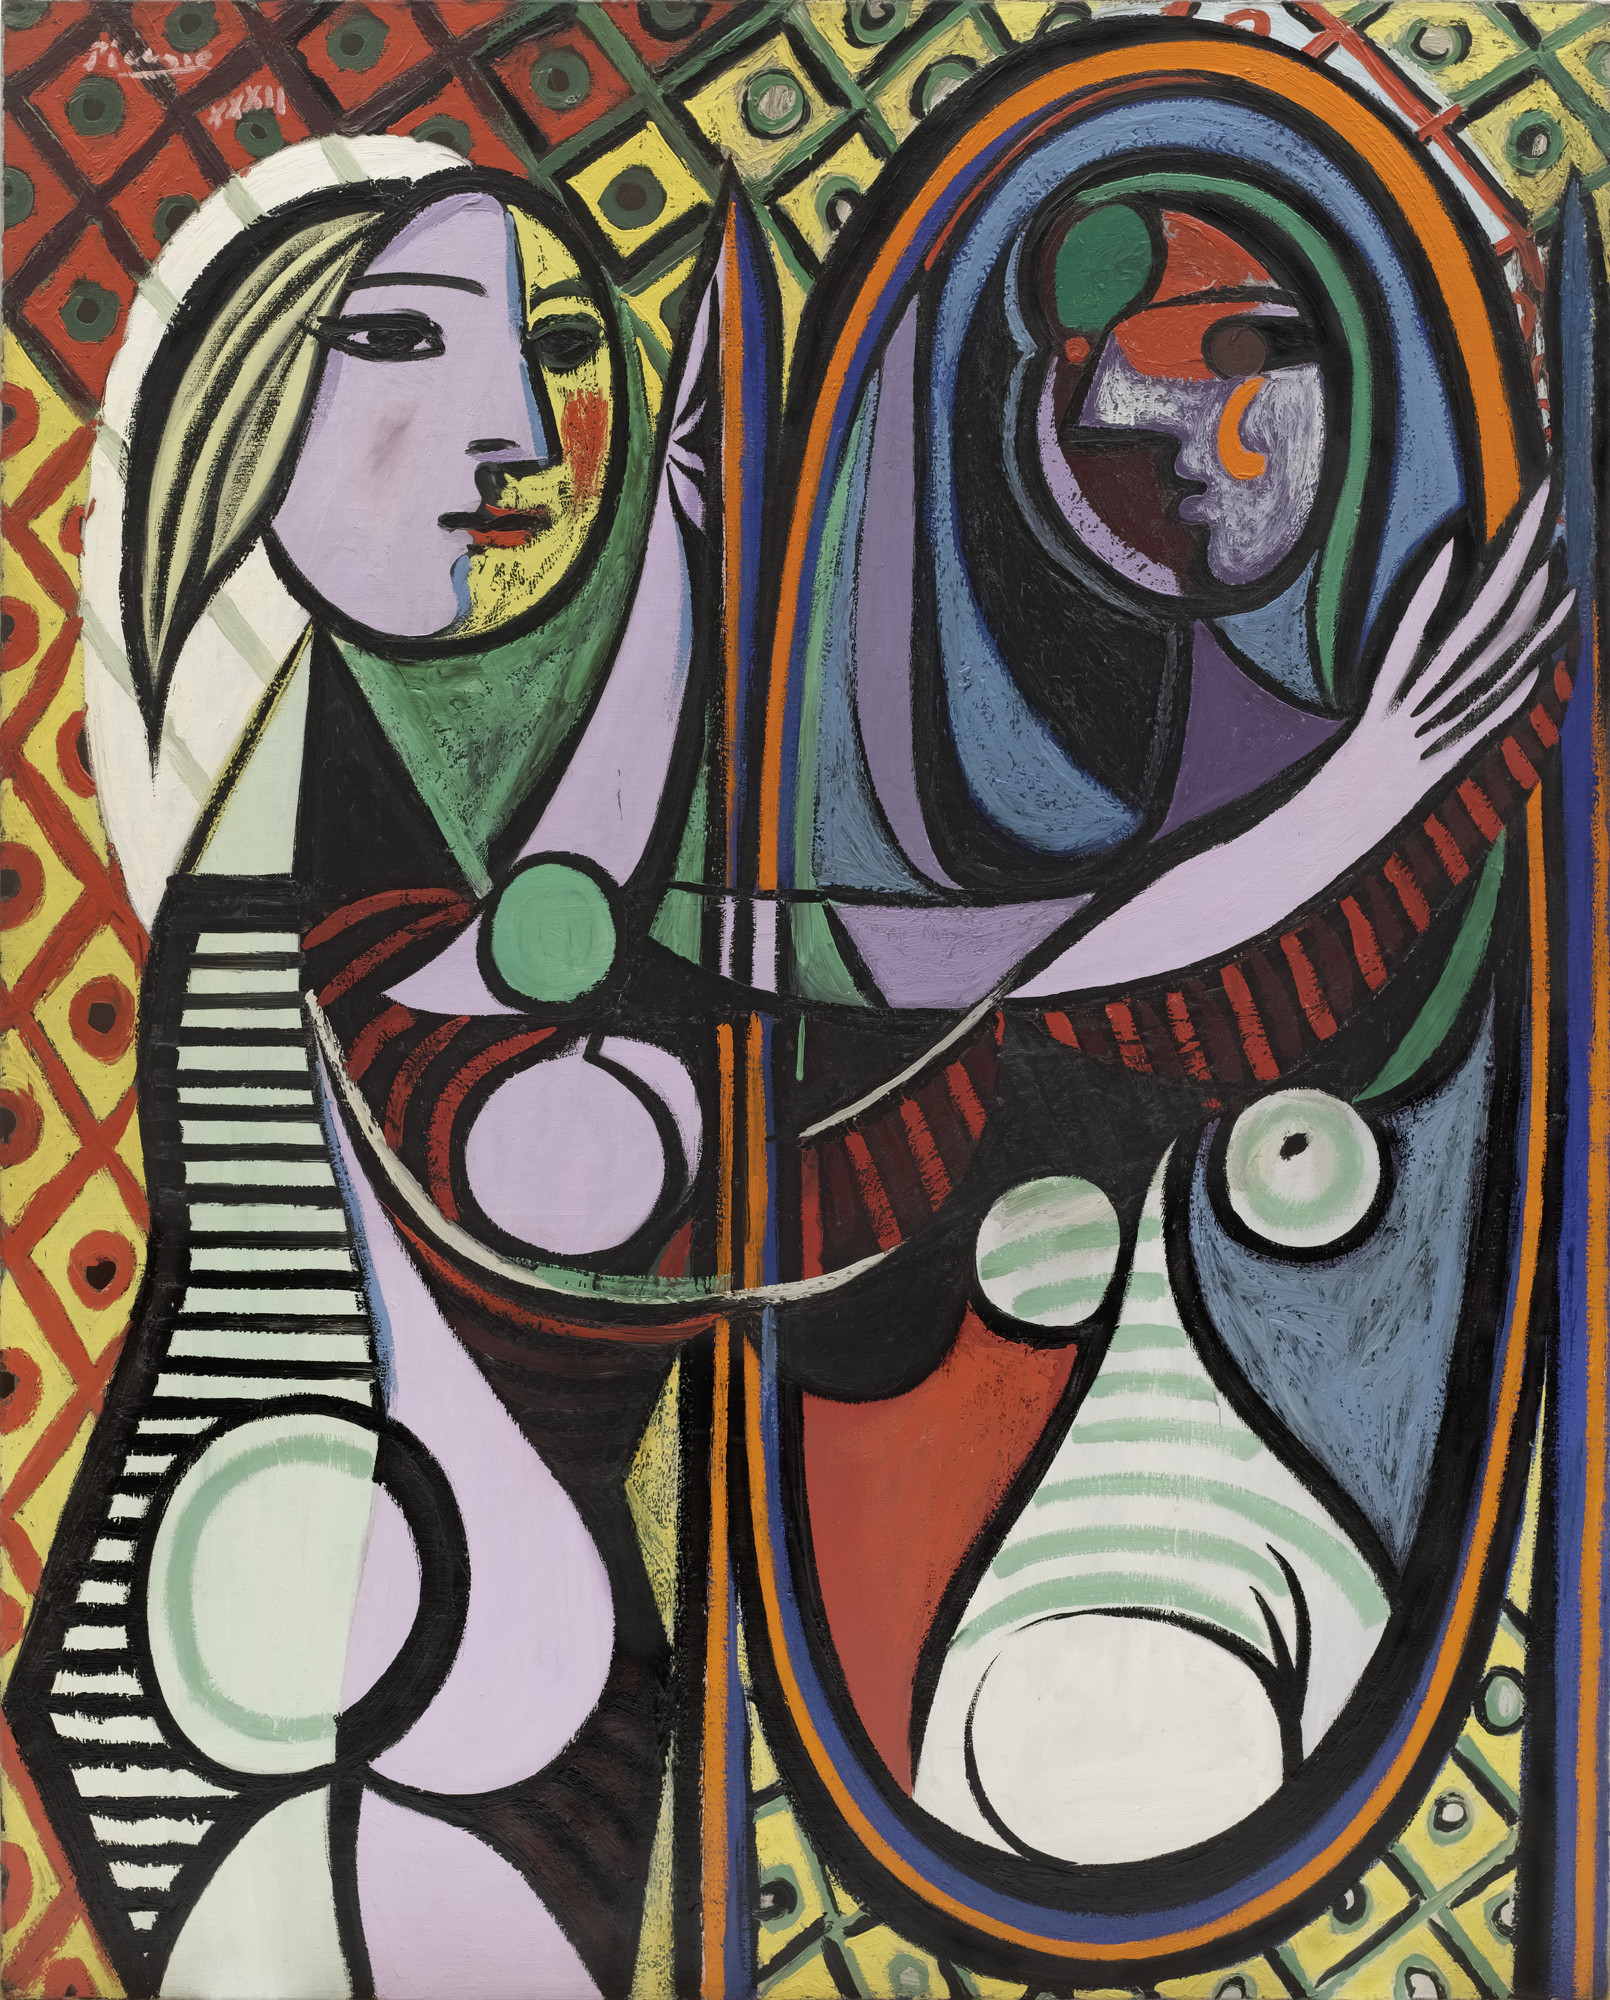 Pablo Picasso. Girl before a Mirror. Paris, March 14, 1932 | MoMA